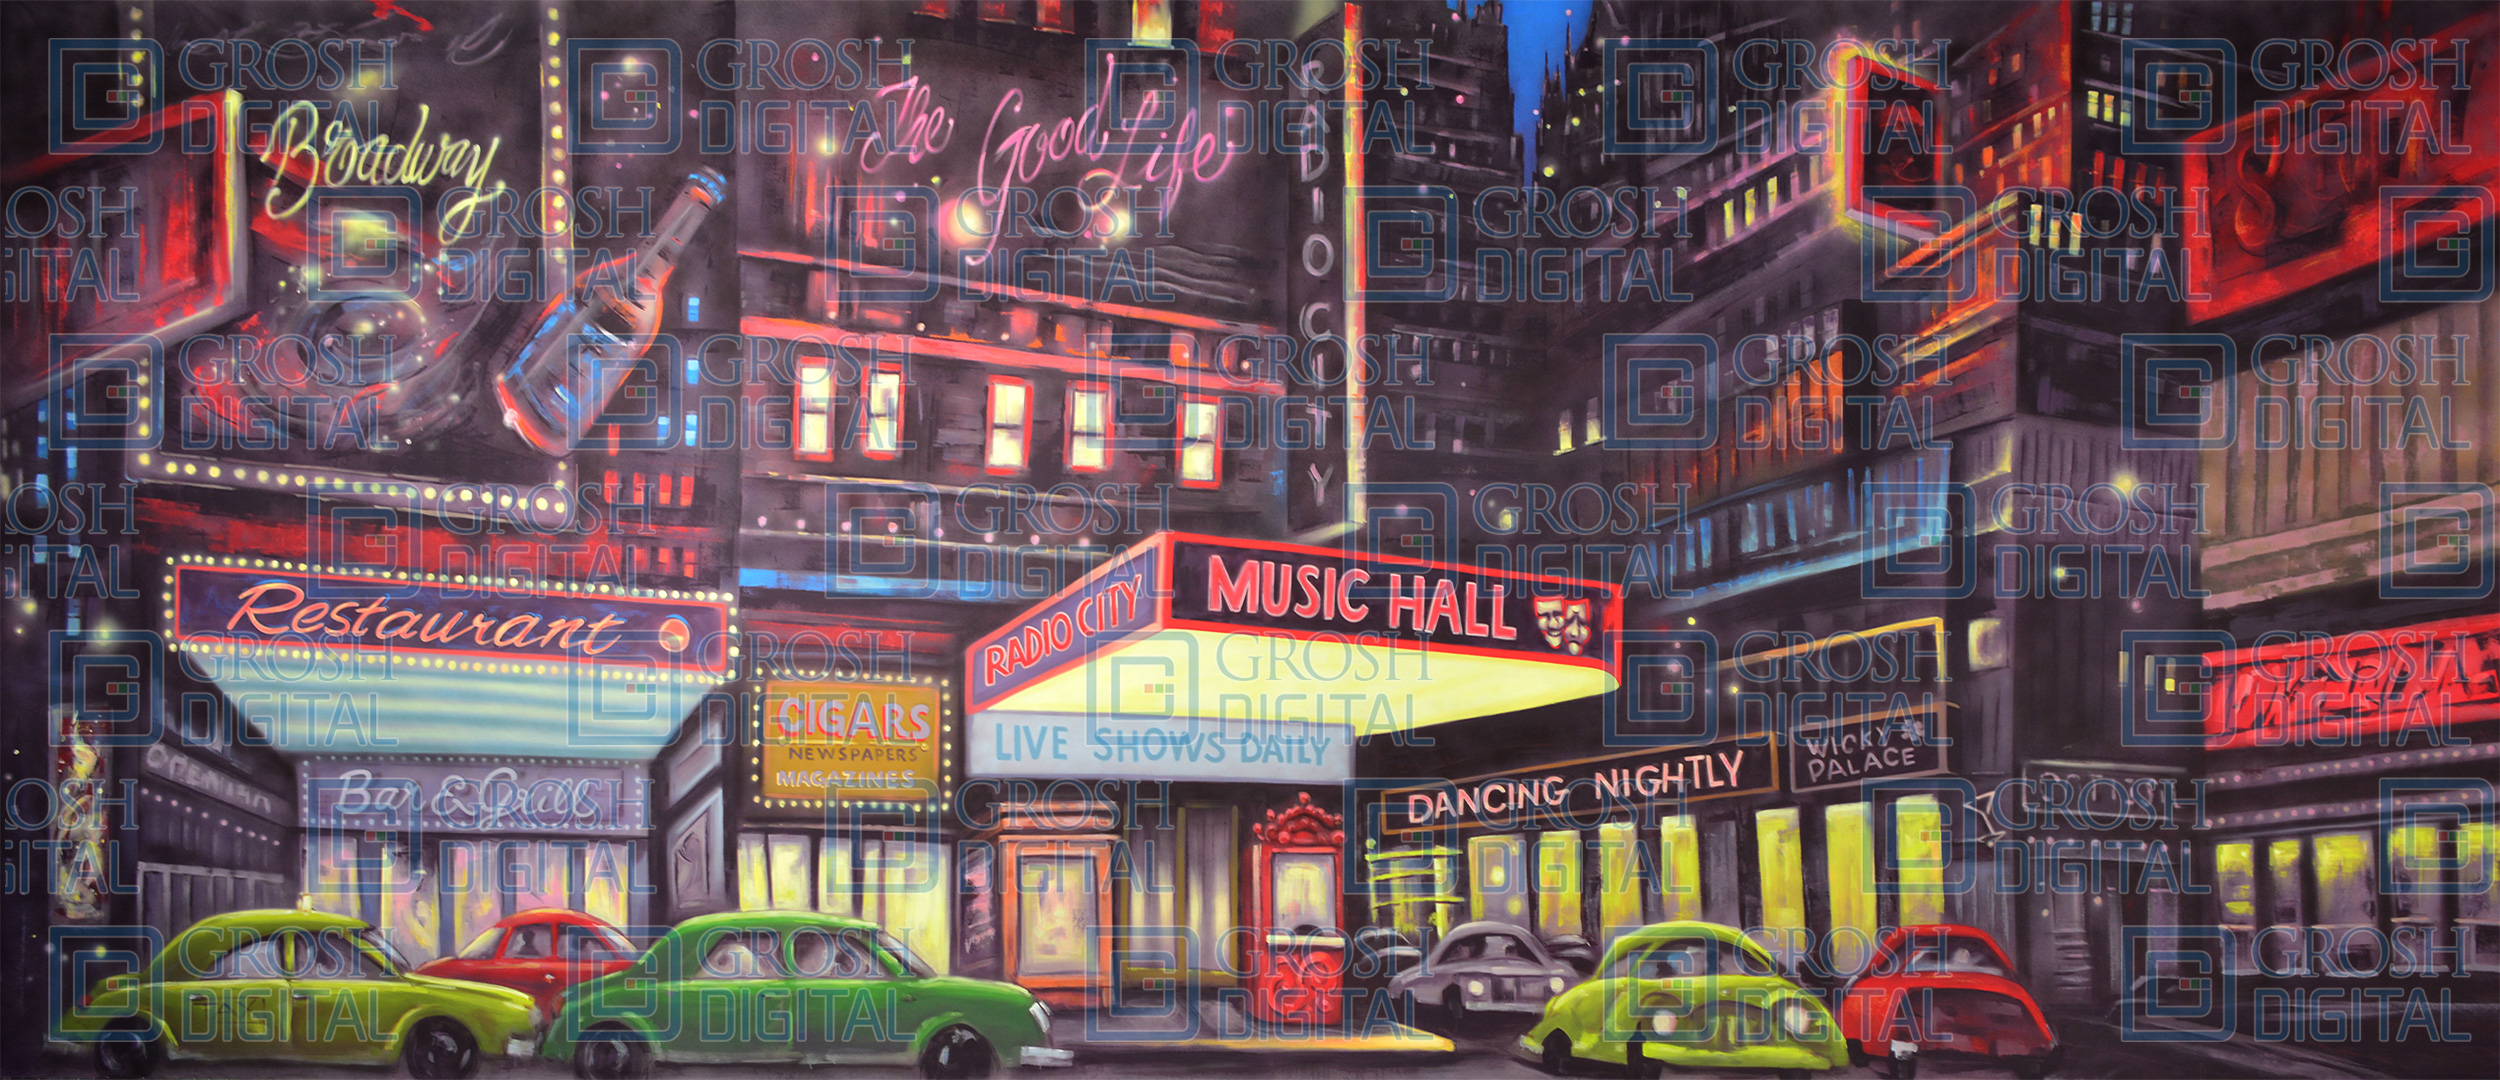 Broadway Projected Backdrop for 42nd Street, Annie, Big Fish, Broadway/New York, Crazy for You, Elf the Musical, Exteriors, Guys and Dolls, How to Succeed in Business, In the Heights, Newsies, Skylines, Streets, Thoroughly Modern Millie, West Side Story